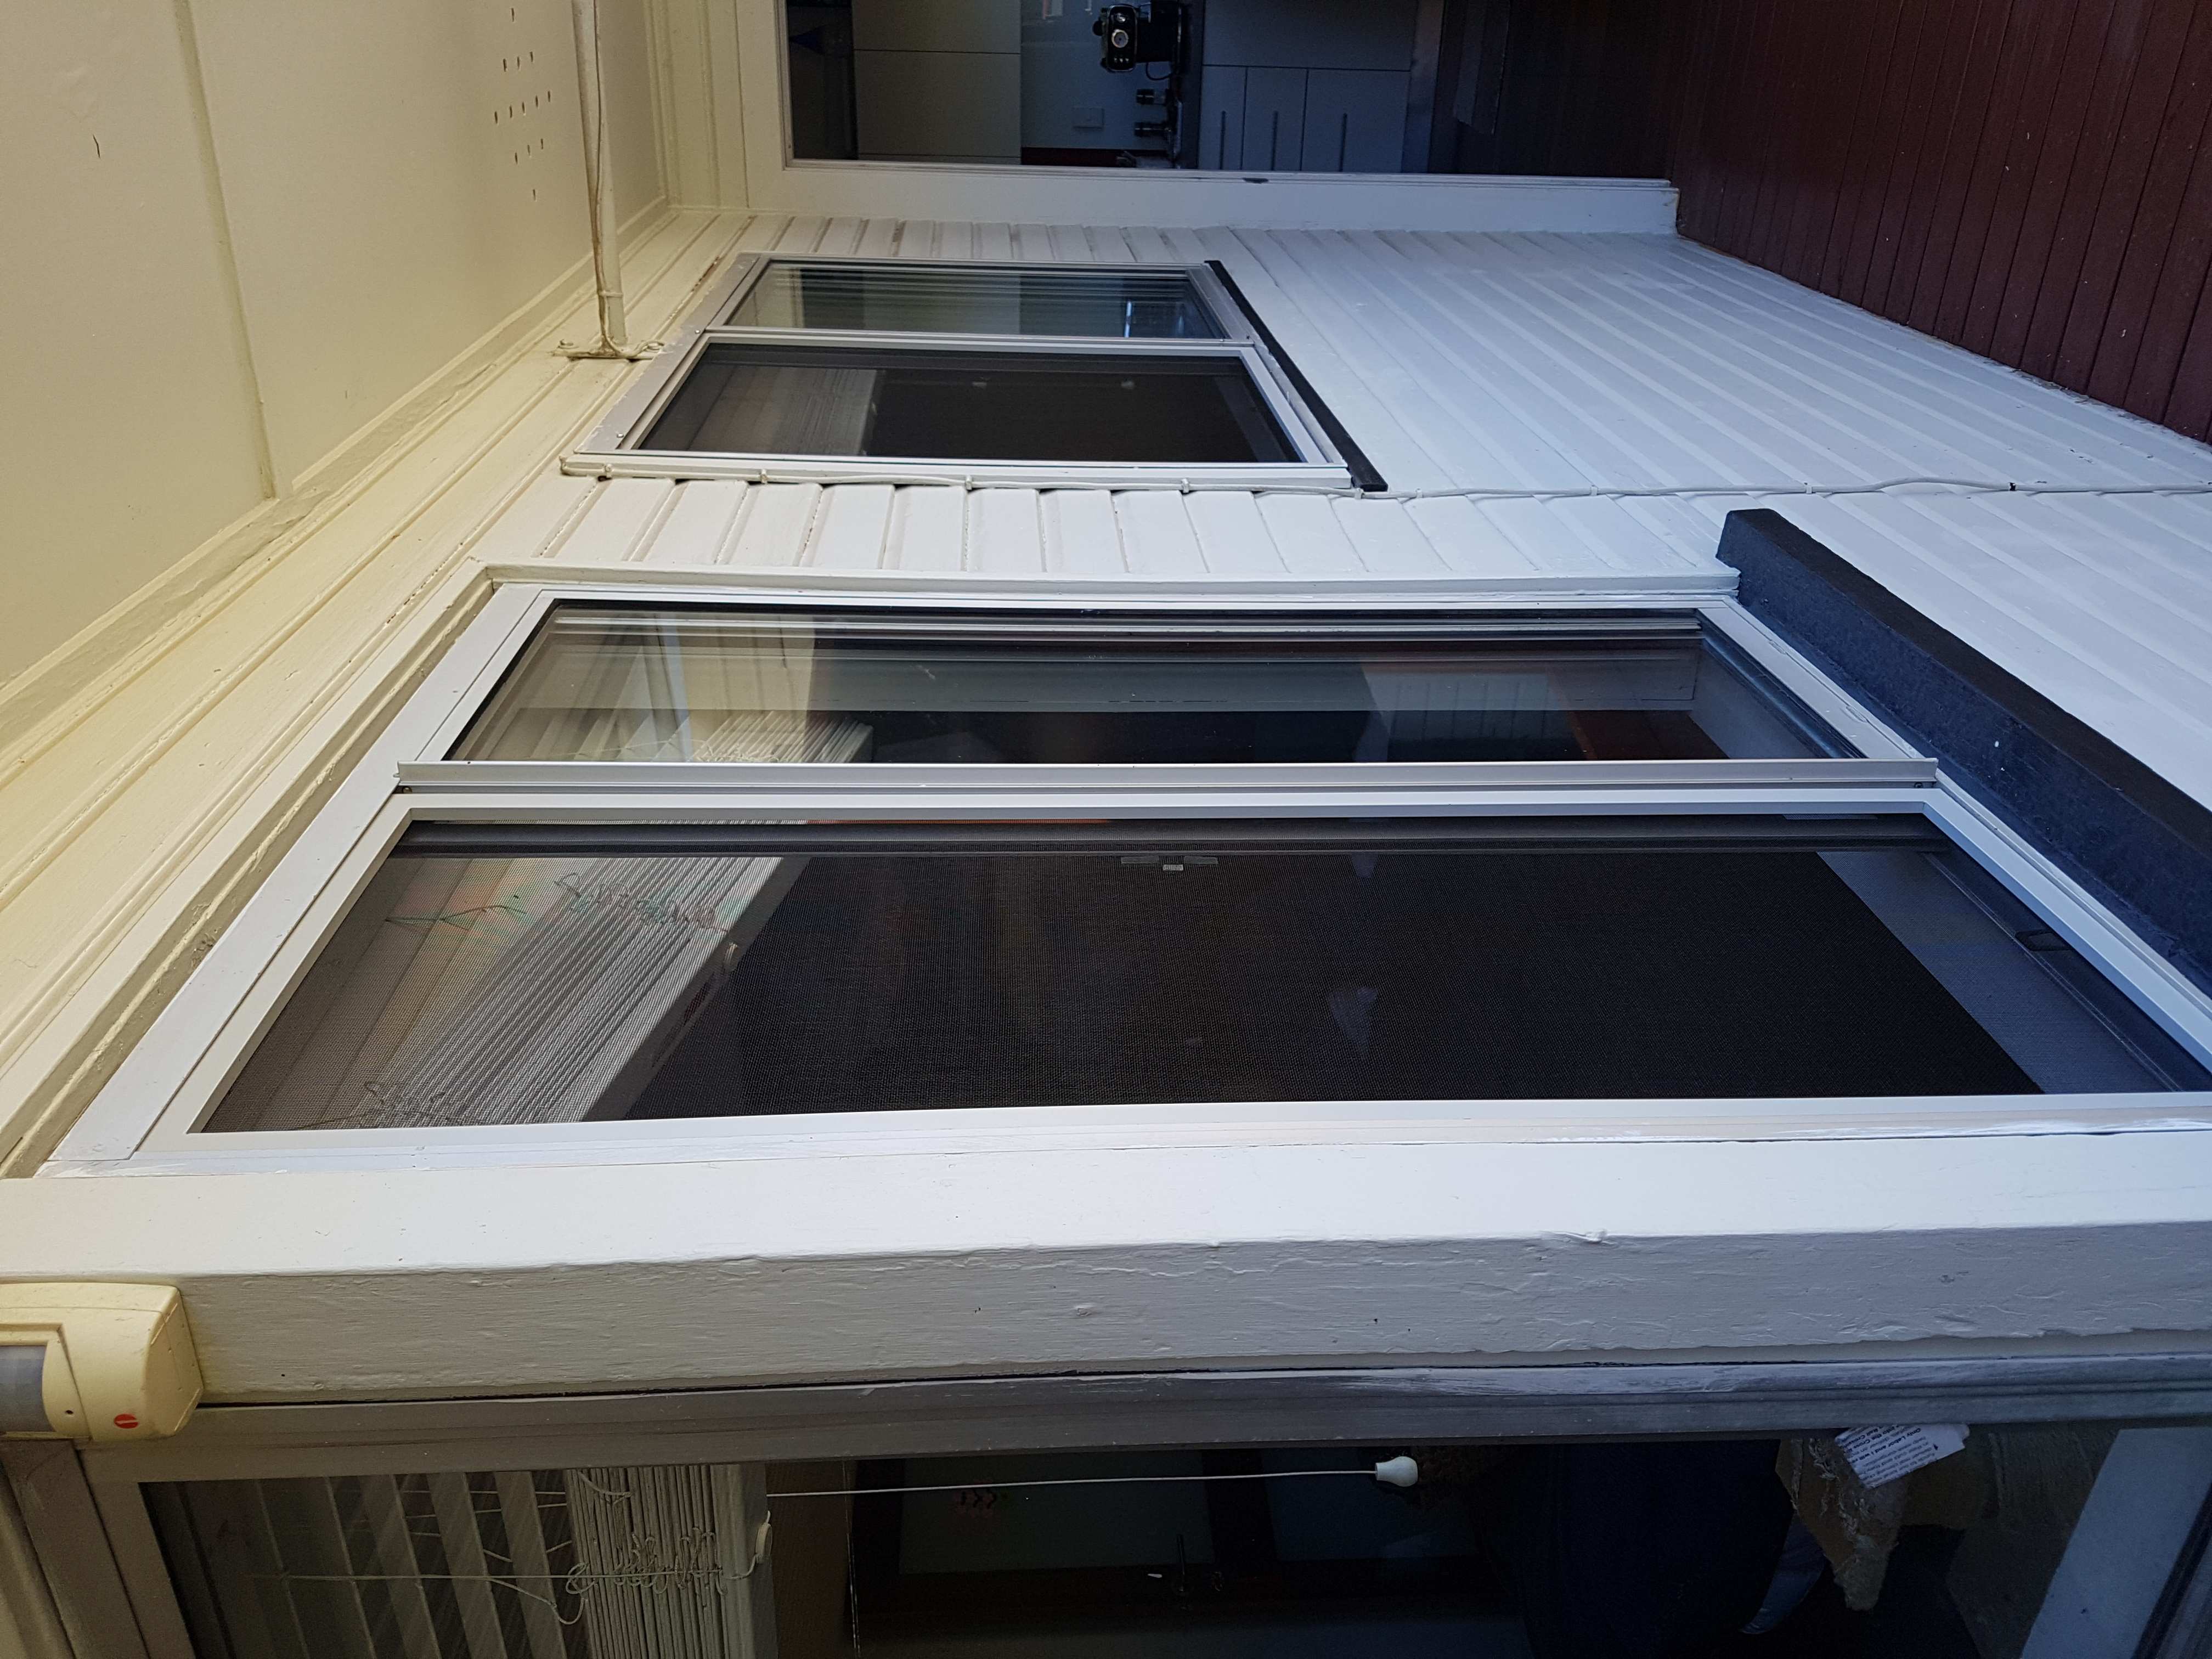 New flyscreen windows to keep the insects out, Coorparoo